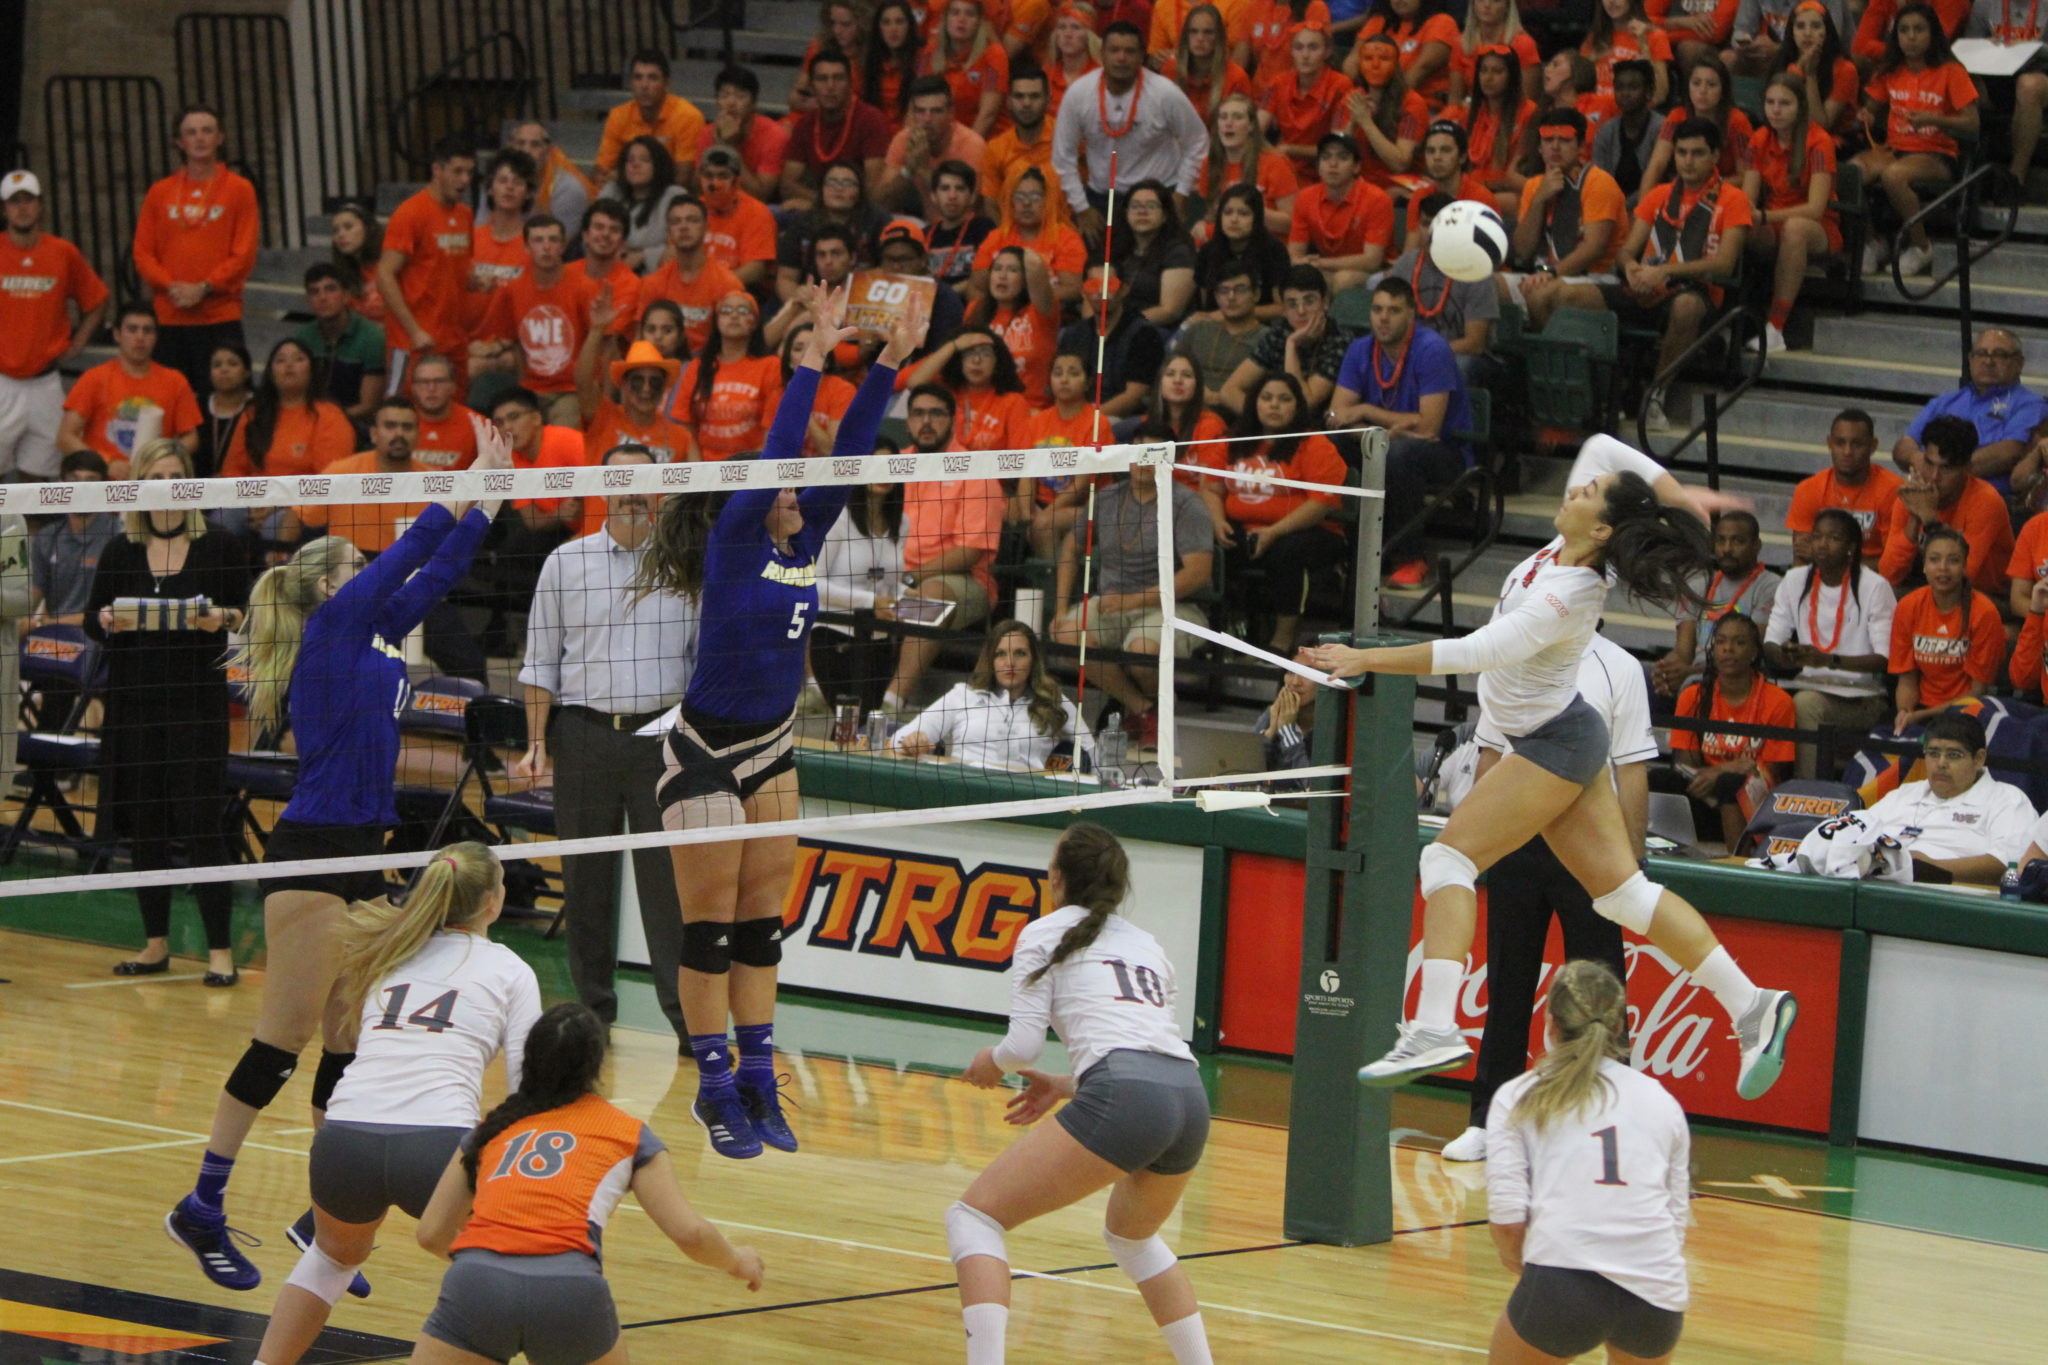 UTRGV outside hitter Barbara Silva elevates for a kill against California State University, Bakersfield in the WAC Tournament Championship match on Nov. 18 in the UTRGV Fieldhouse.